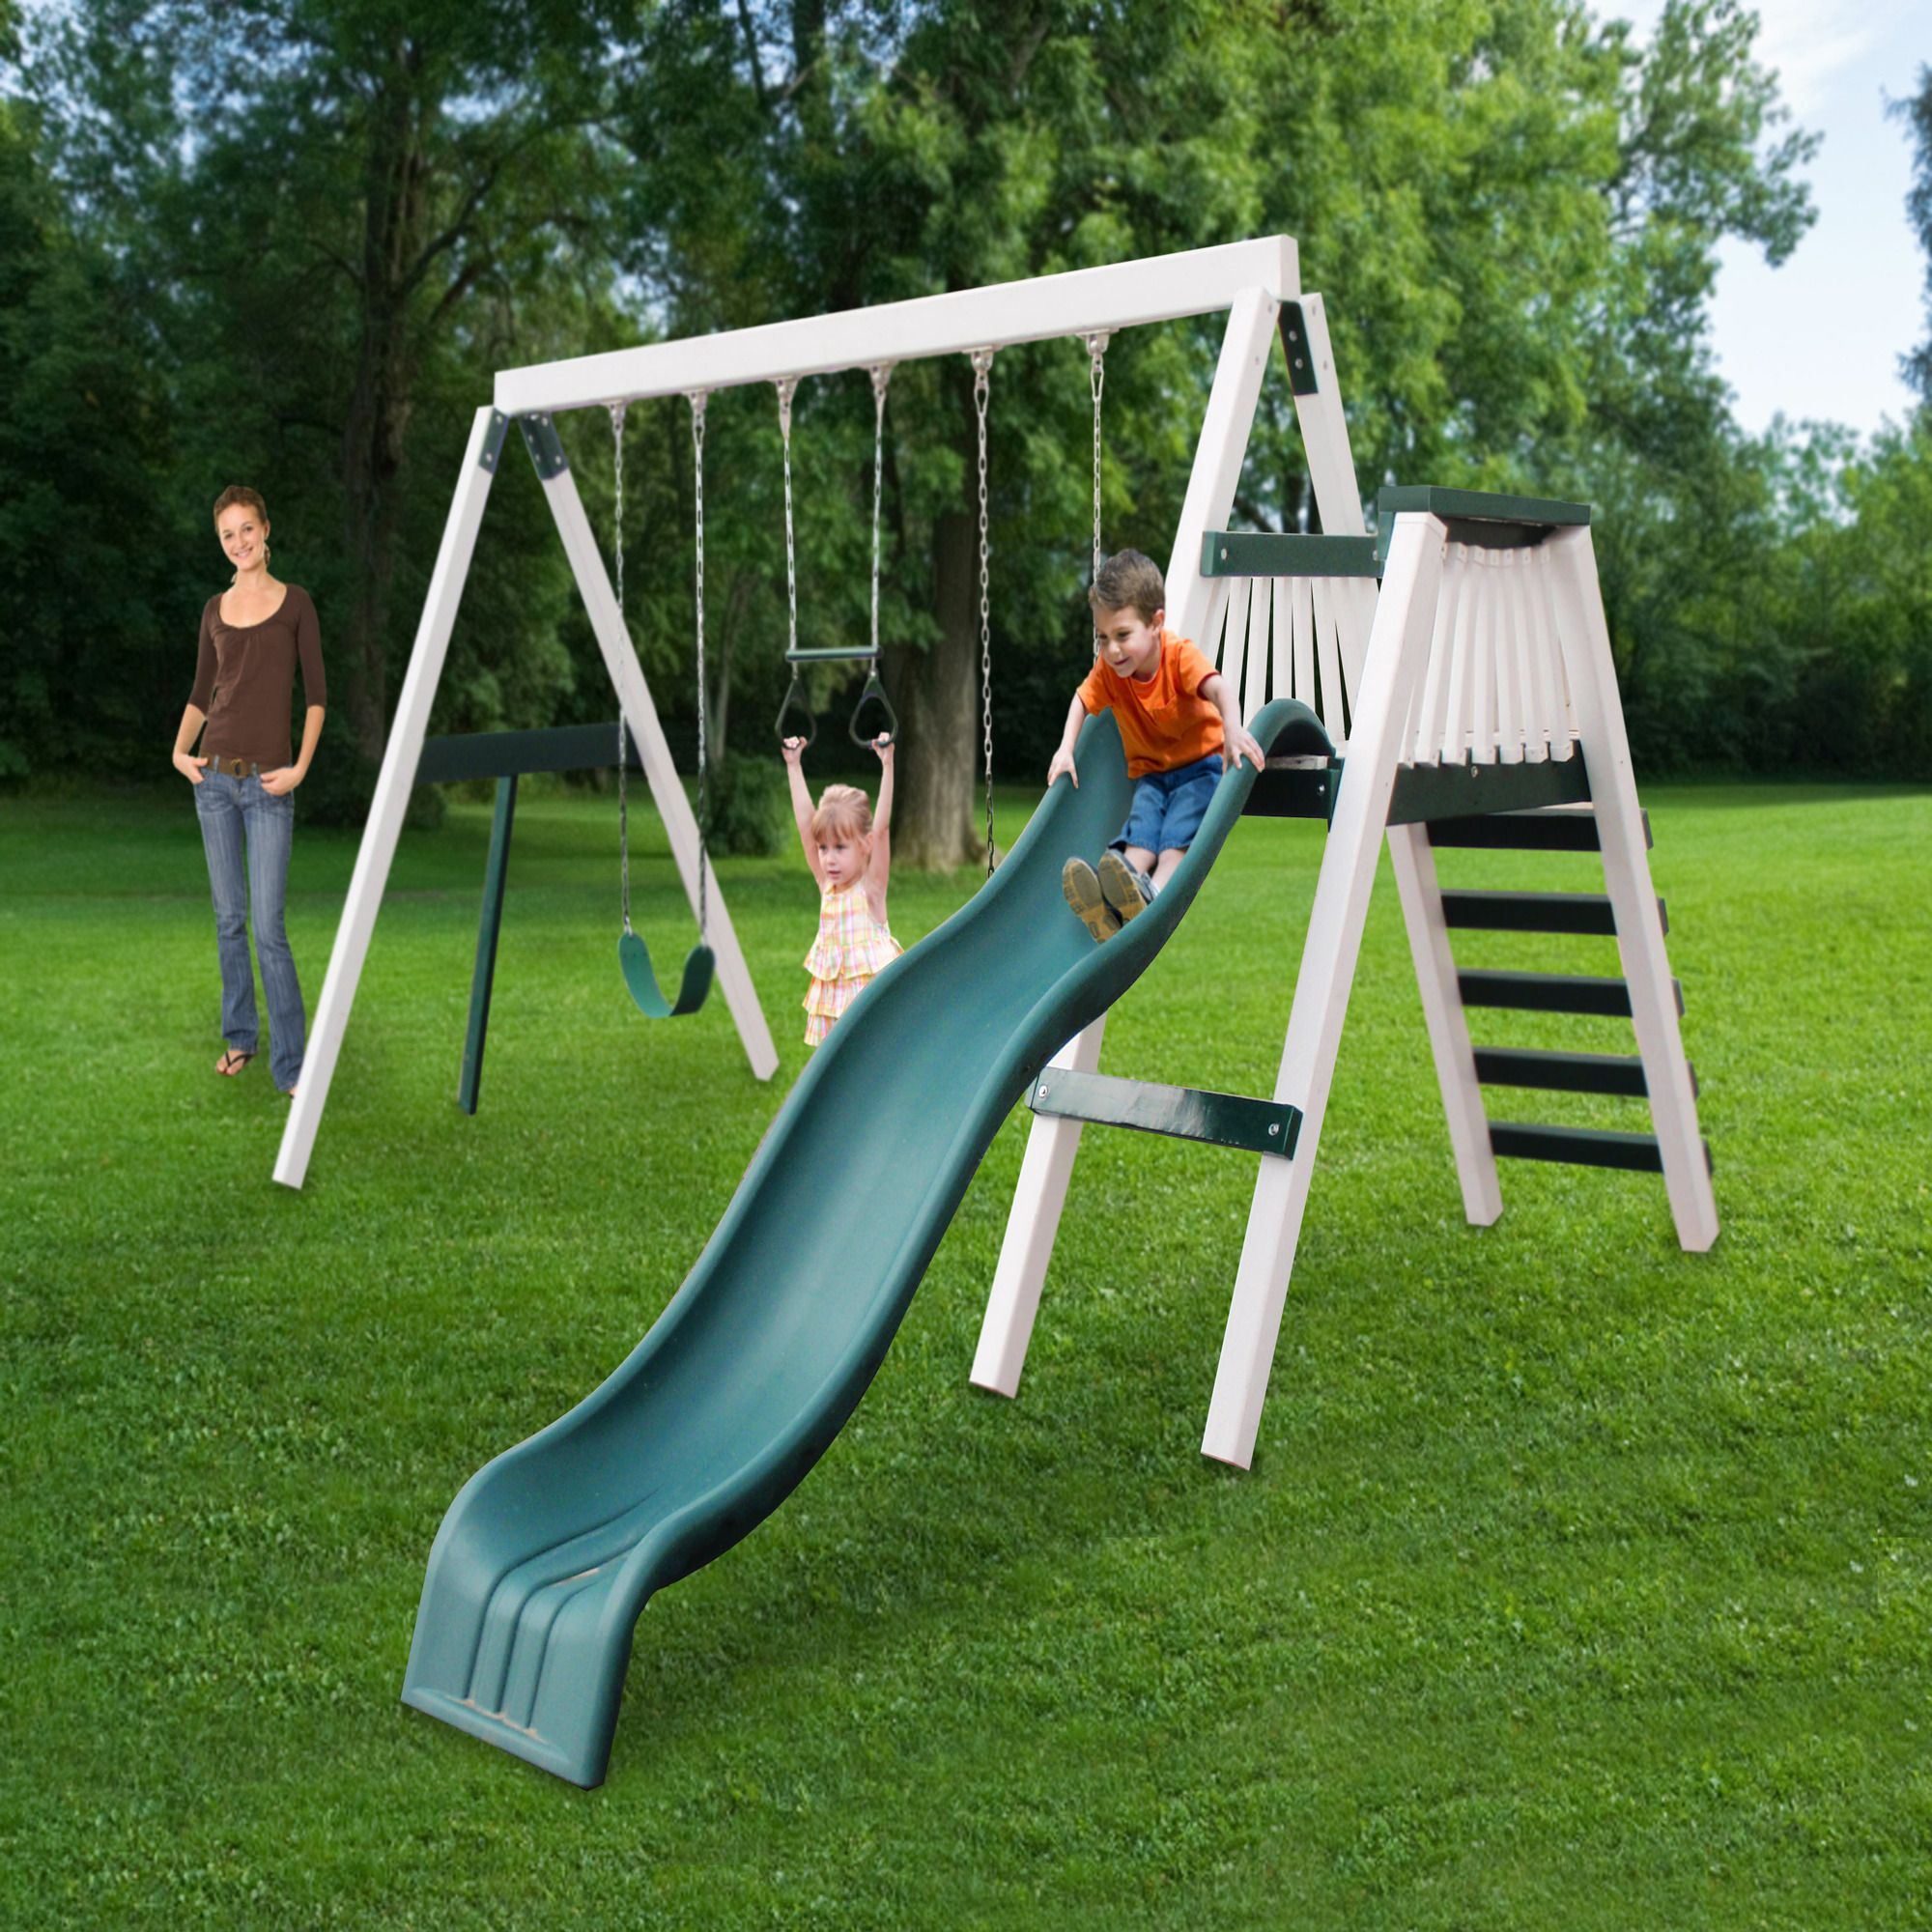 features includes top swing beam with one trapeze bar swing